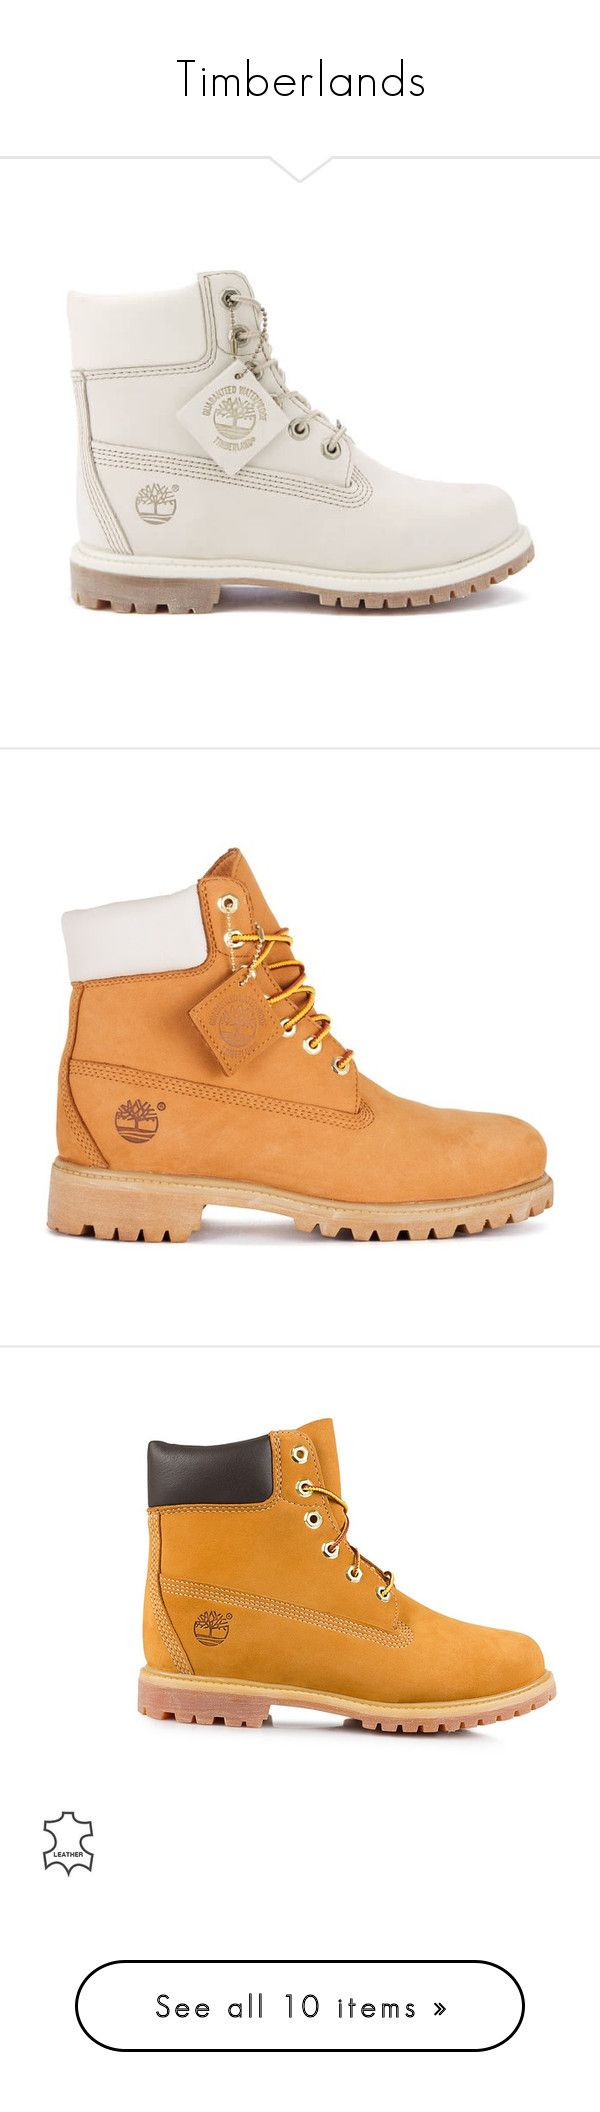 """Timberlands"" by caseynext ❤ liked on Polyvore featuring shoes, boots, boots/booties, white, flat shoes, ivory shoes, water proof boots, white flat boots, white boots and sneakers"